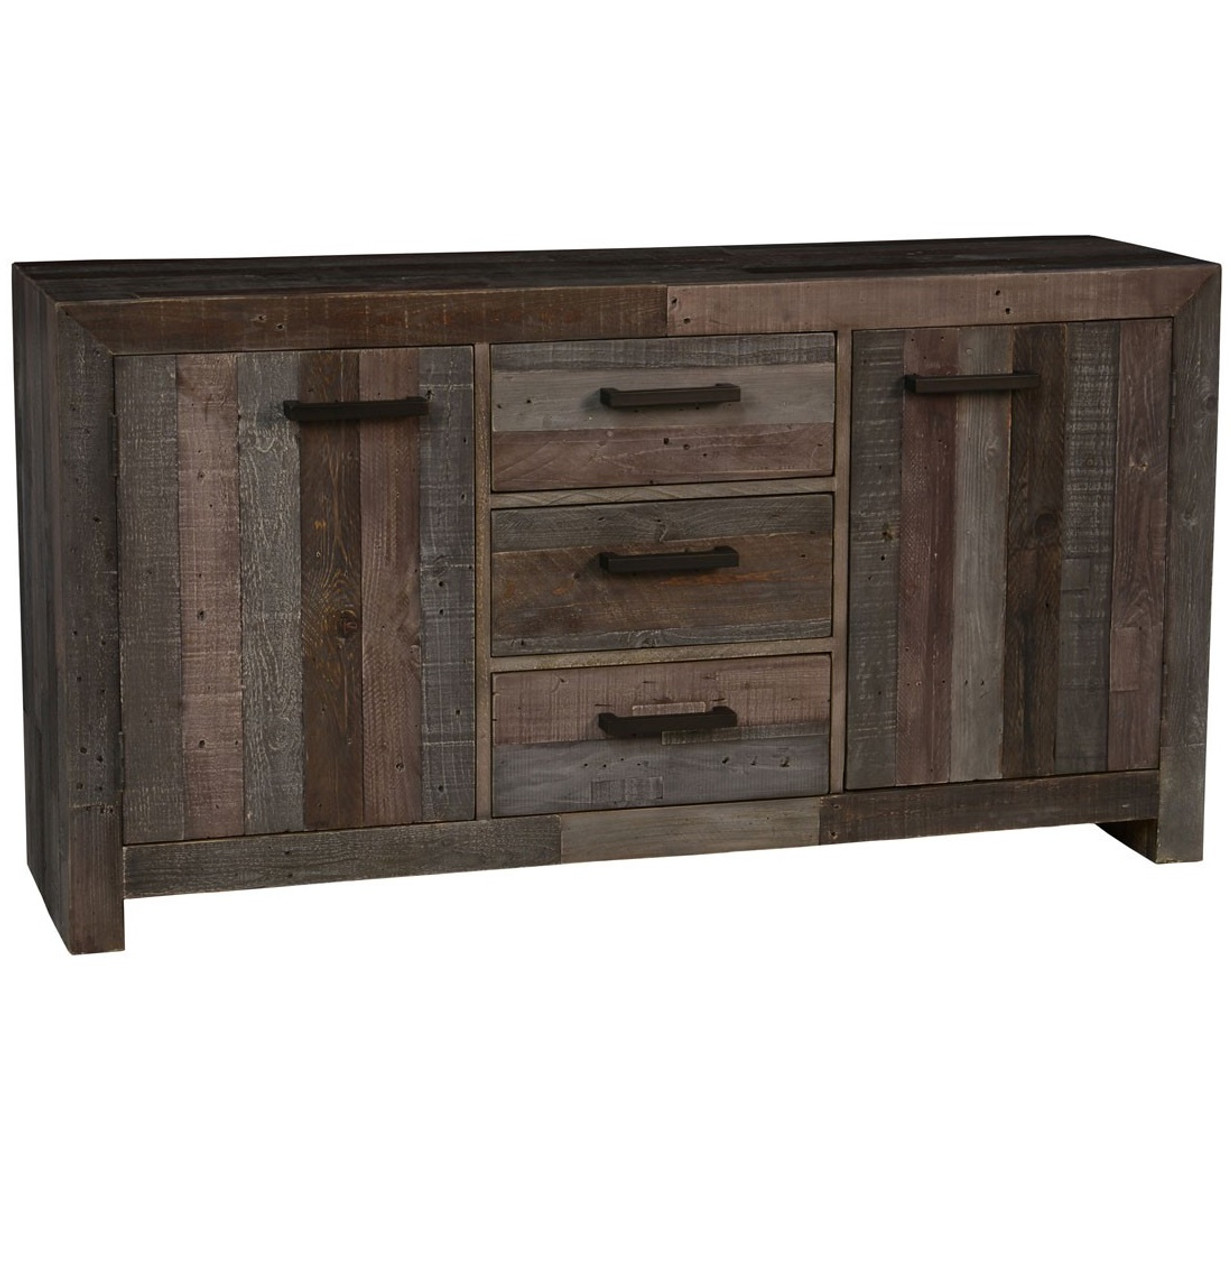 Wood Elevation For Buffet : Angora storm reclaimed wood buffet sideboard zin home